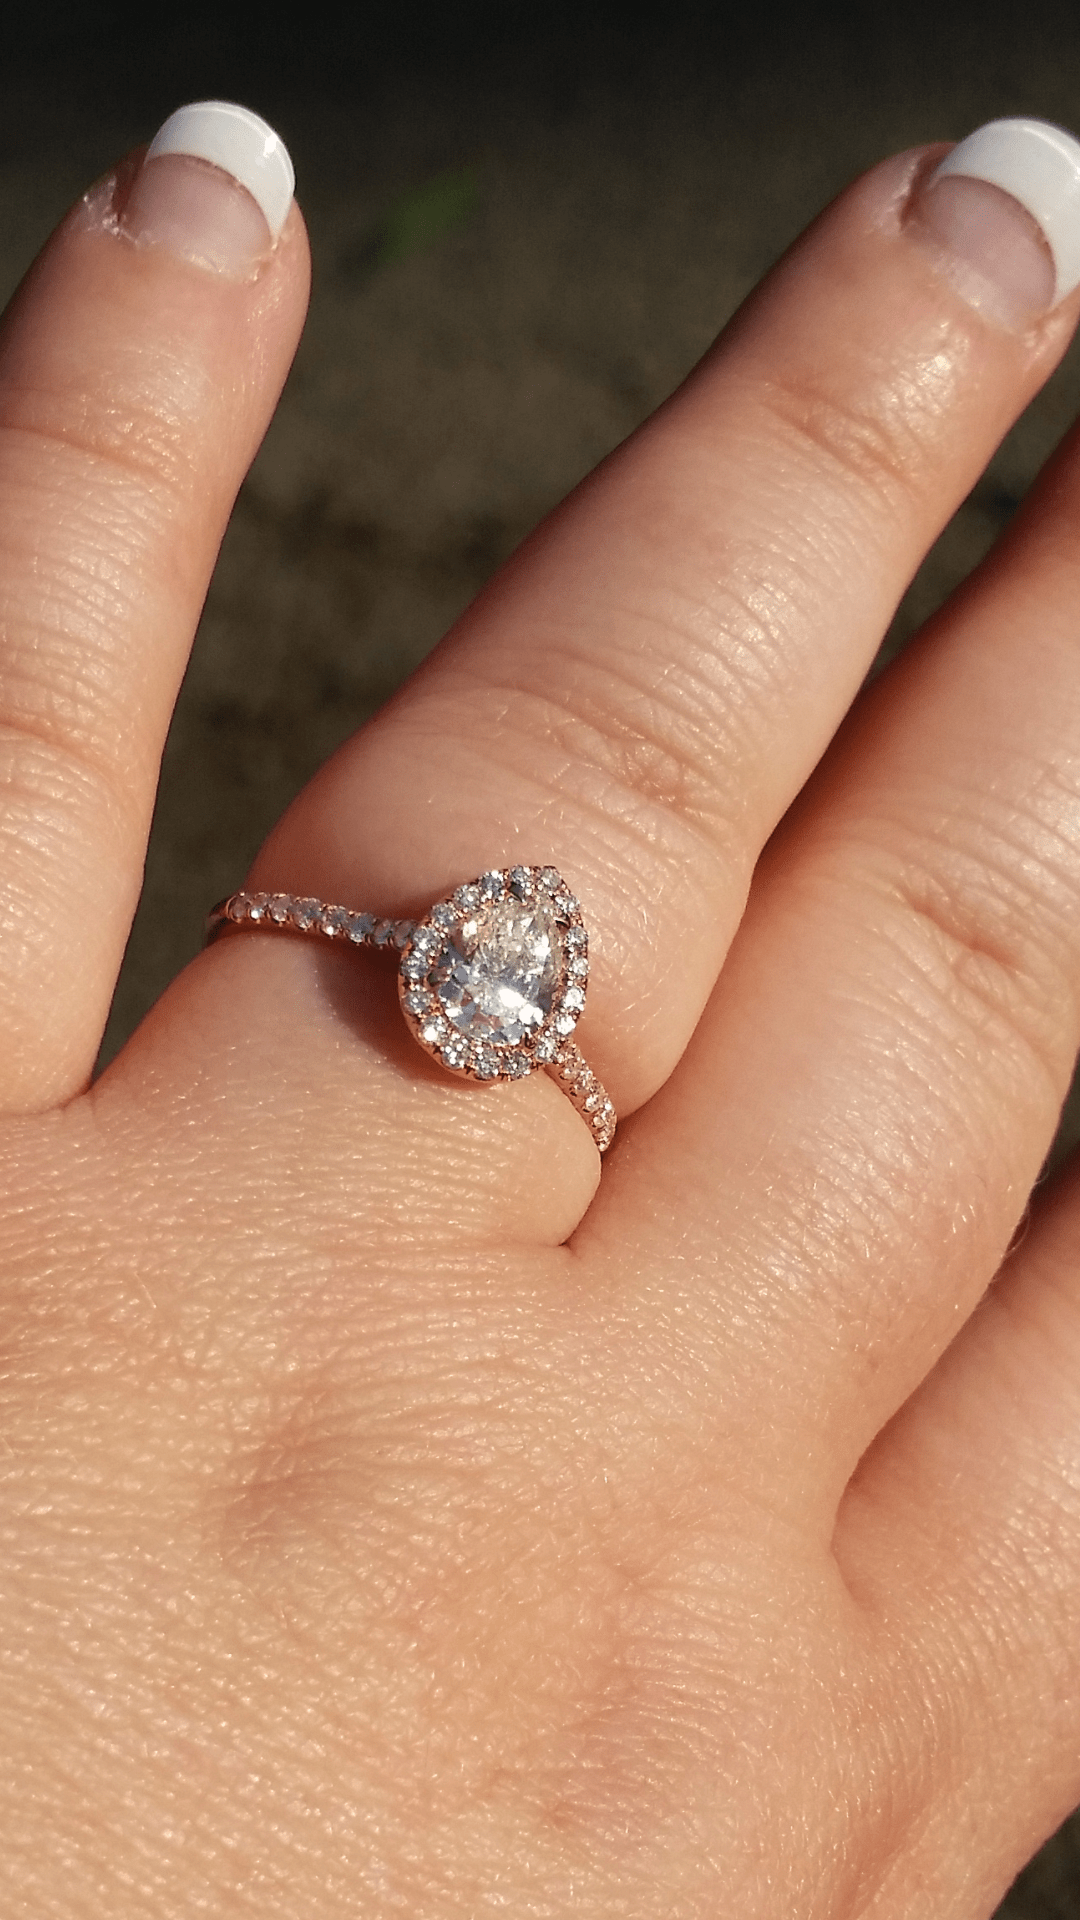 what wedding band for with a pear shaped ring pear shaped wedding ring So now I m dreaming about what wedding band I will put with my beautiful pear shaped